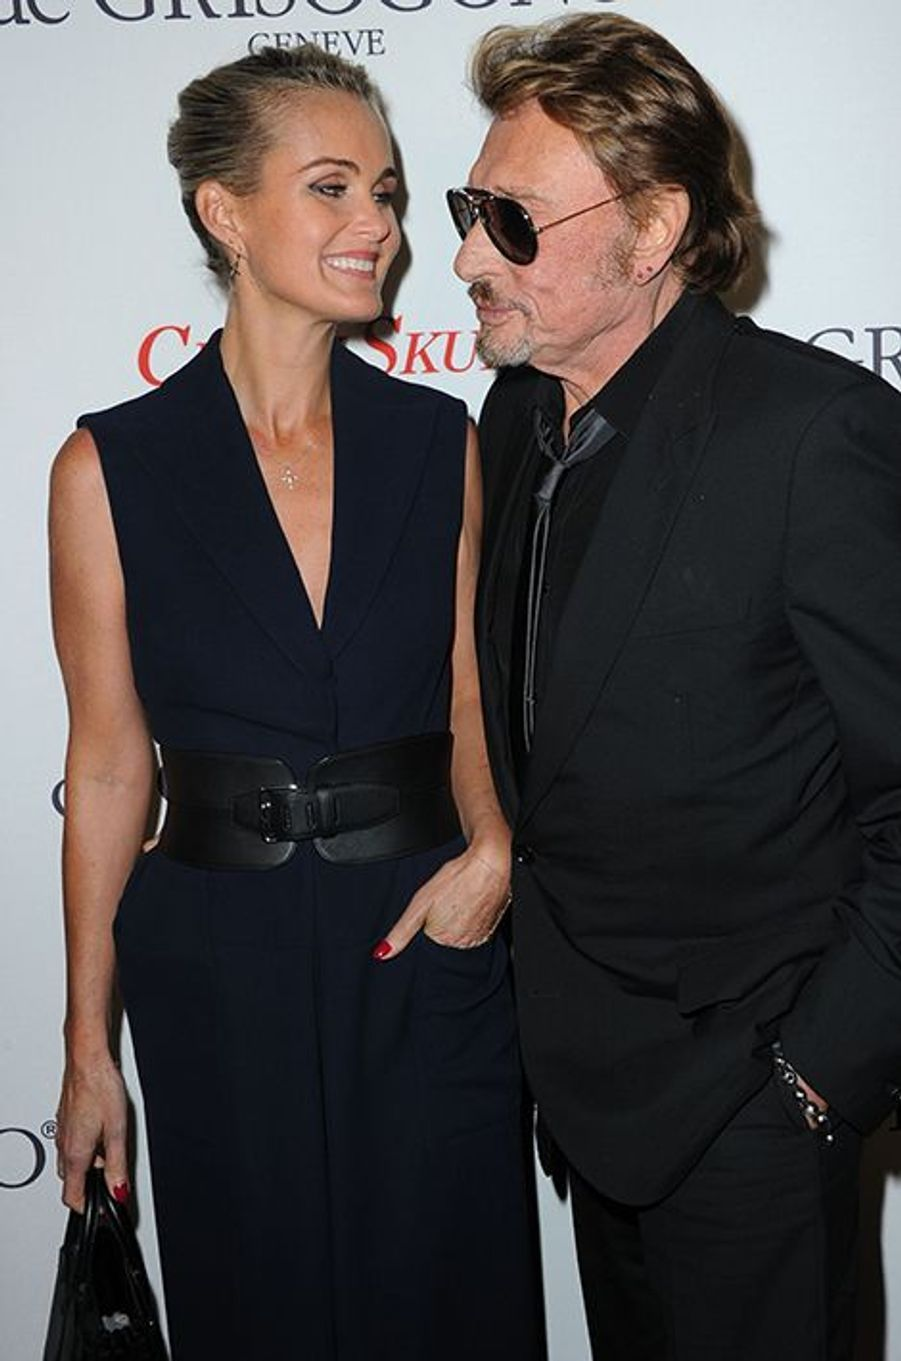 Johnny et Laeticia Hallyday à Paris le 23 octobre 2014